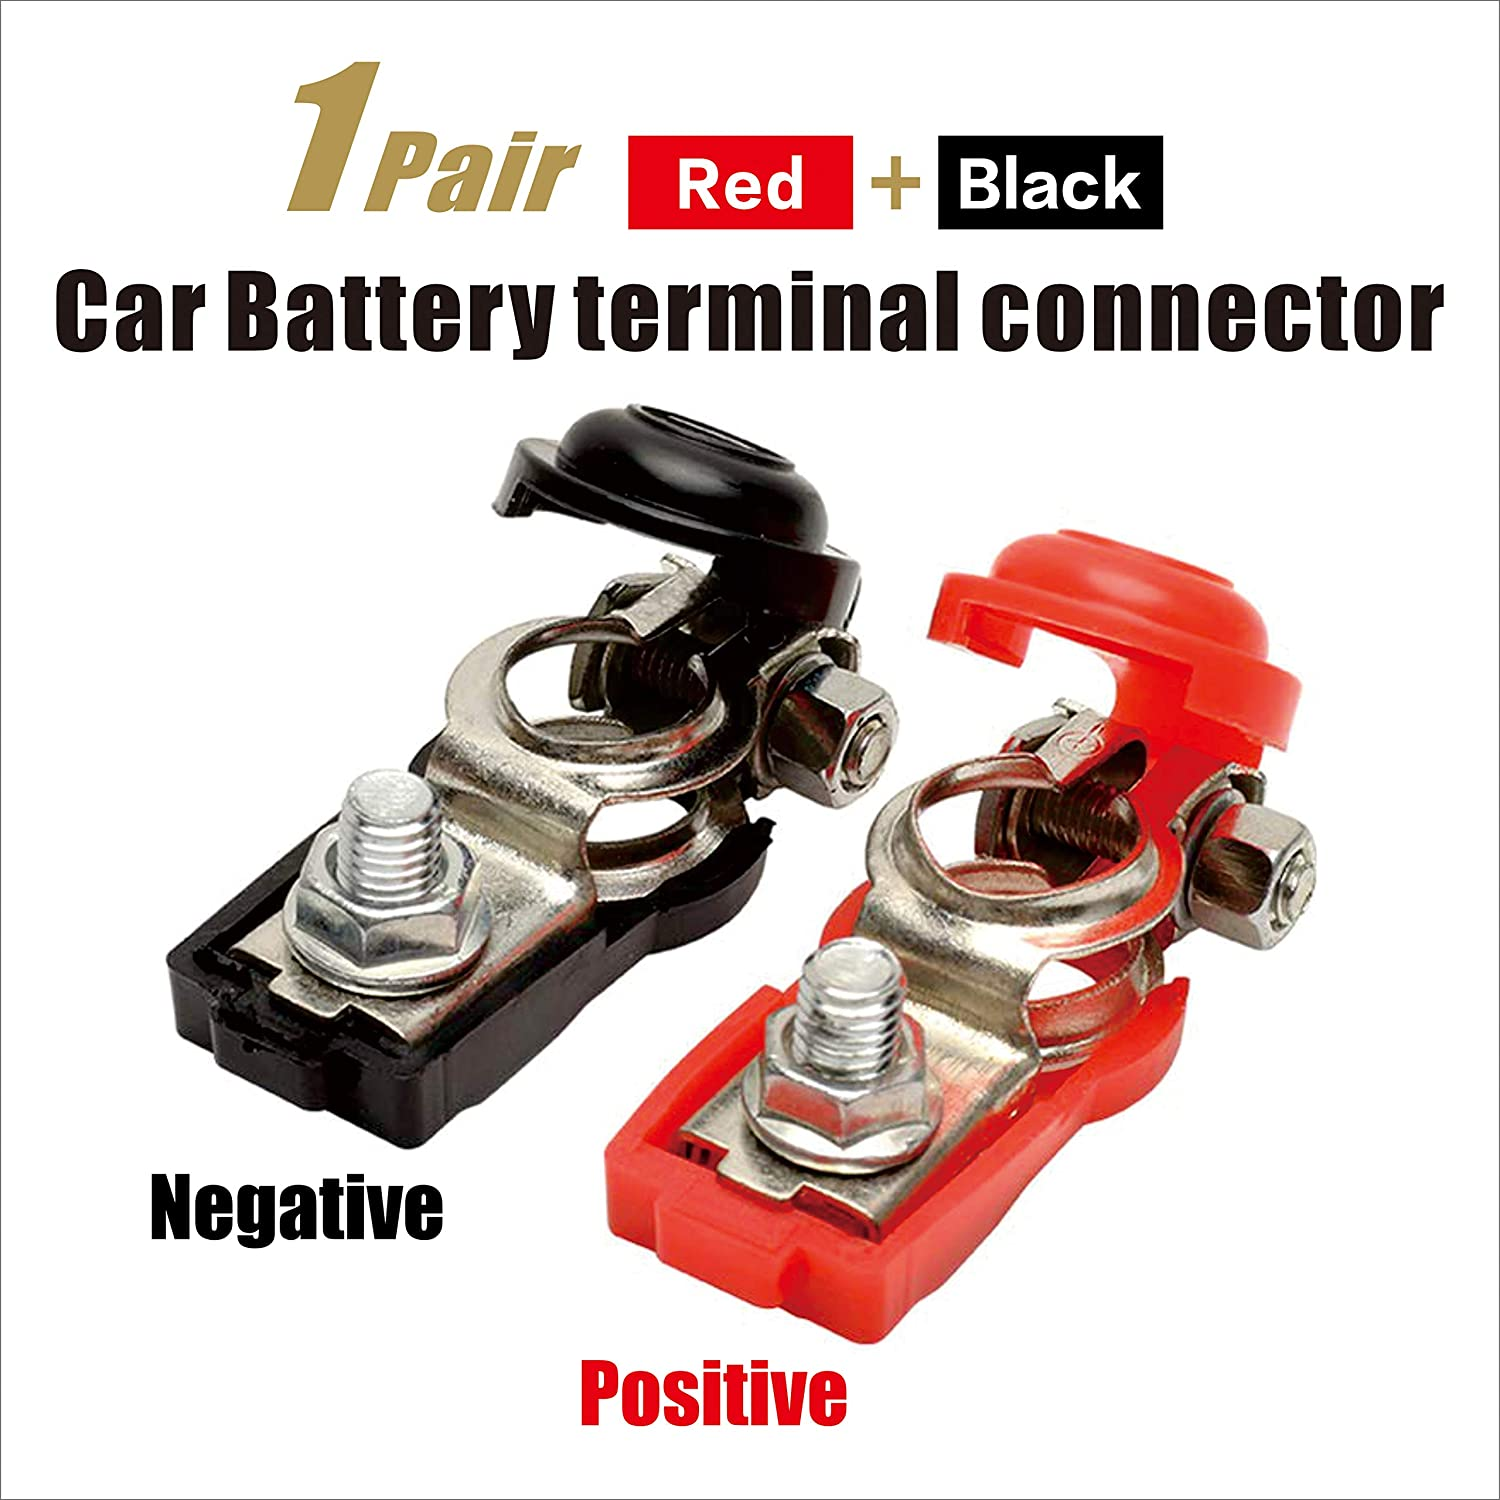 1 Pair Car Battery terminal connector Clamp Clips Negative Positive for Auto Car Truck (Red+Black)